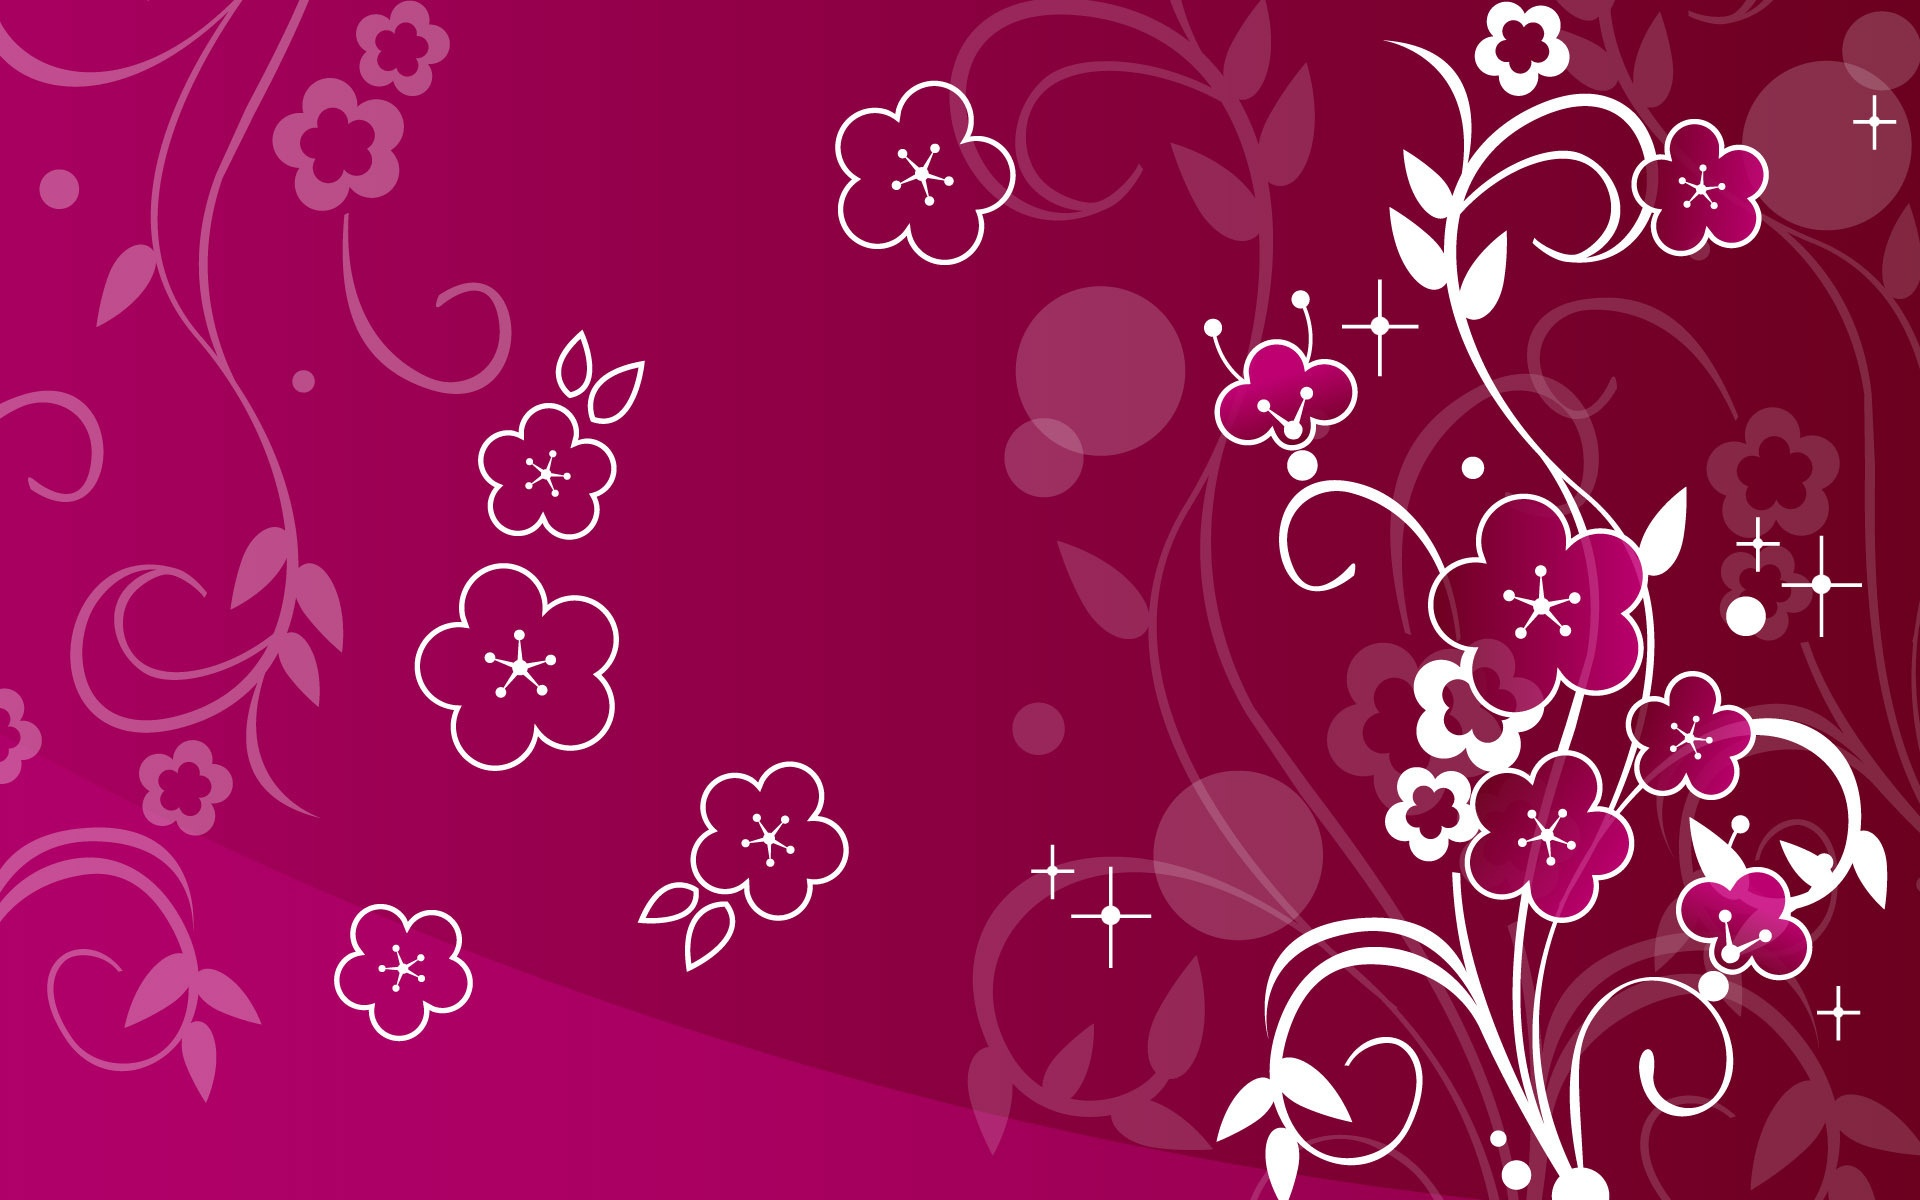 purple flower abstract wallpapers - 1920x1200